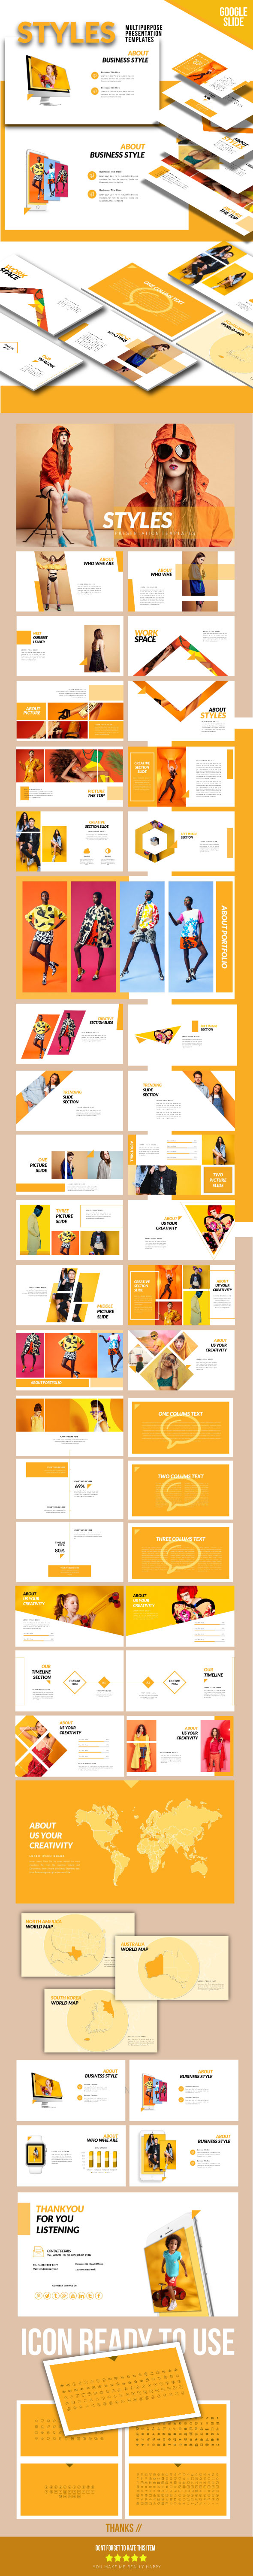 Styles - Google Slide Presentation Templates - Google Slides Presentation Templates